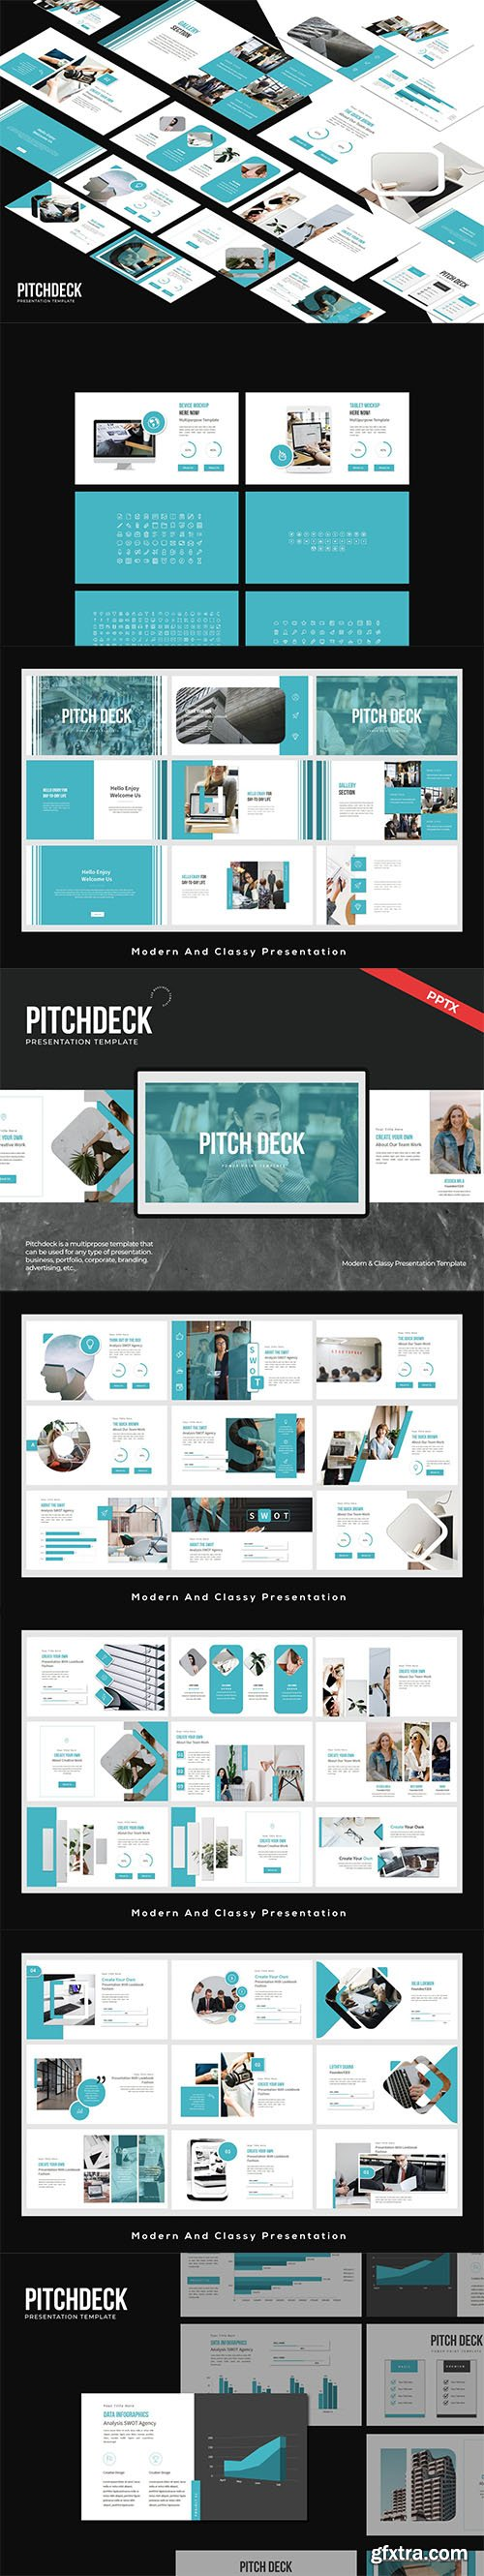 Pitch deck Business Presentation Powerpoint, Keynote and Google Slides Template